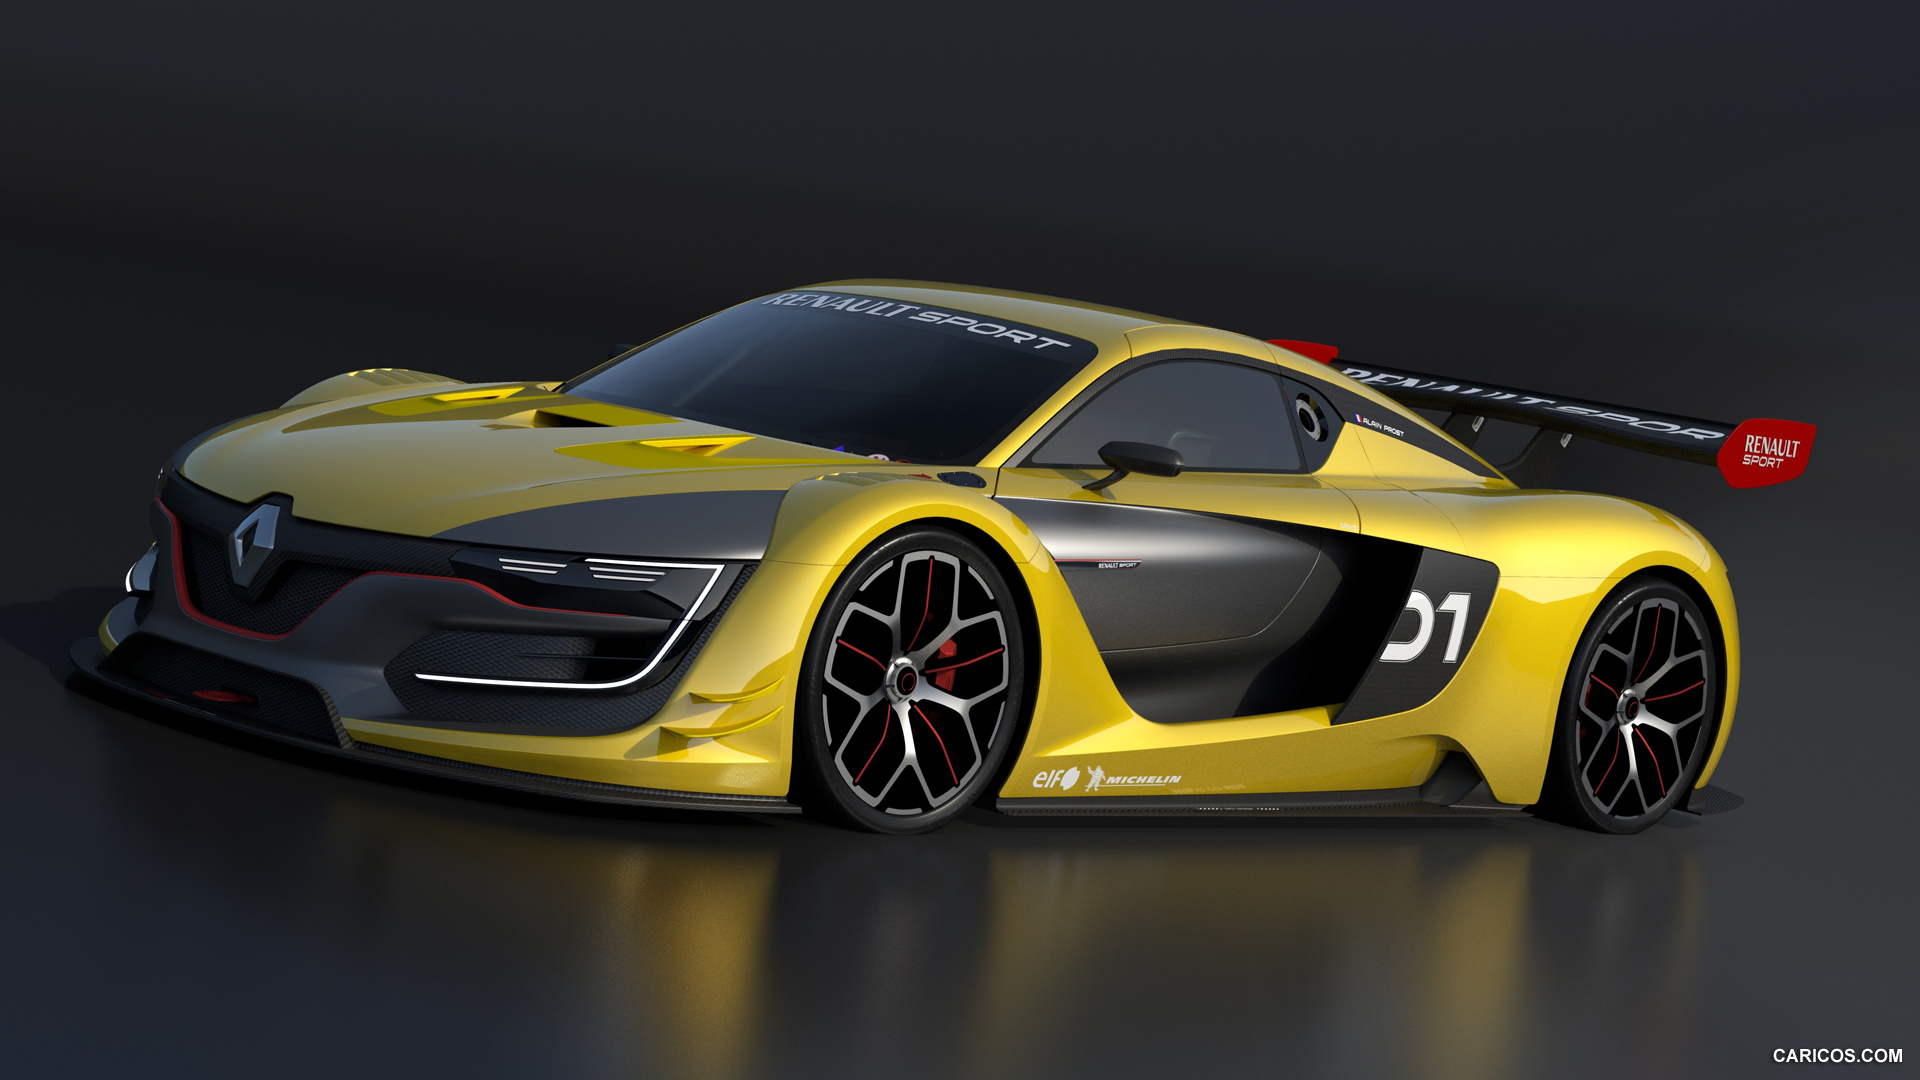 1920x1080 - Renault RS Wallpapers 24